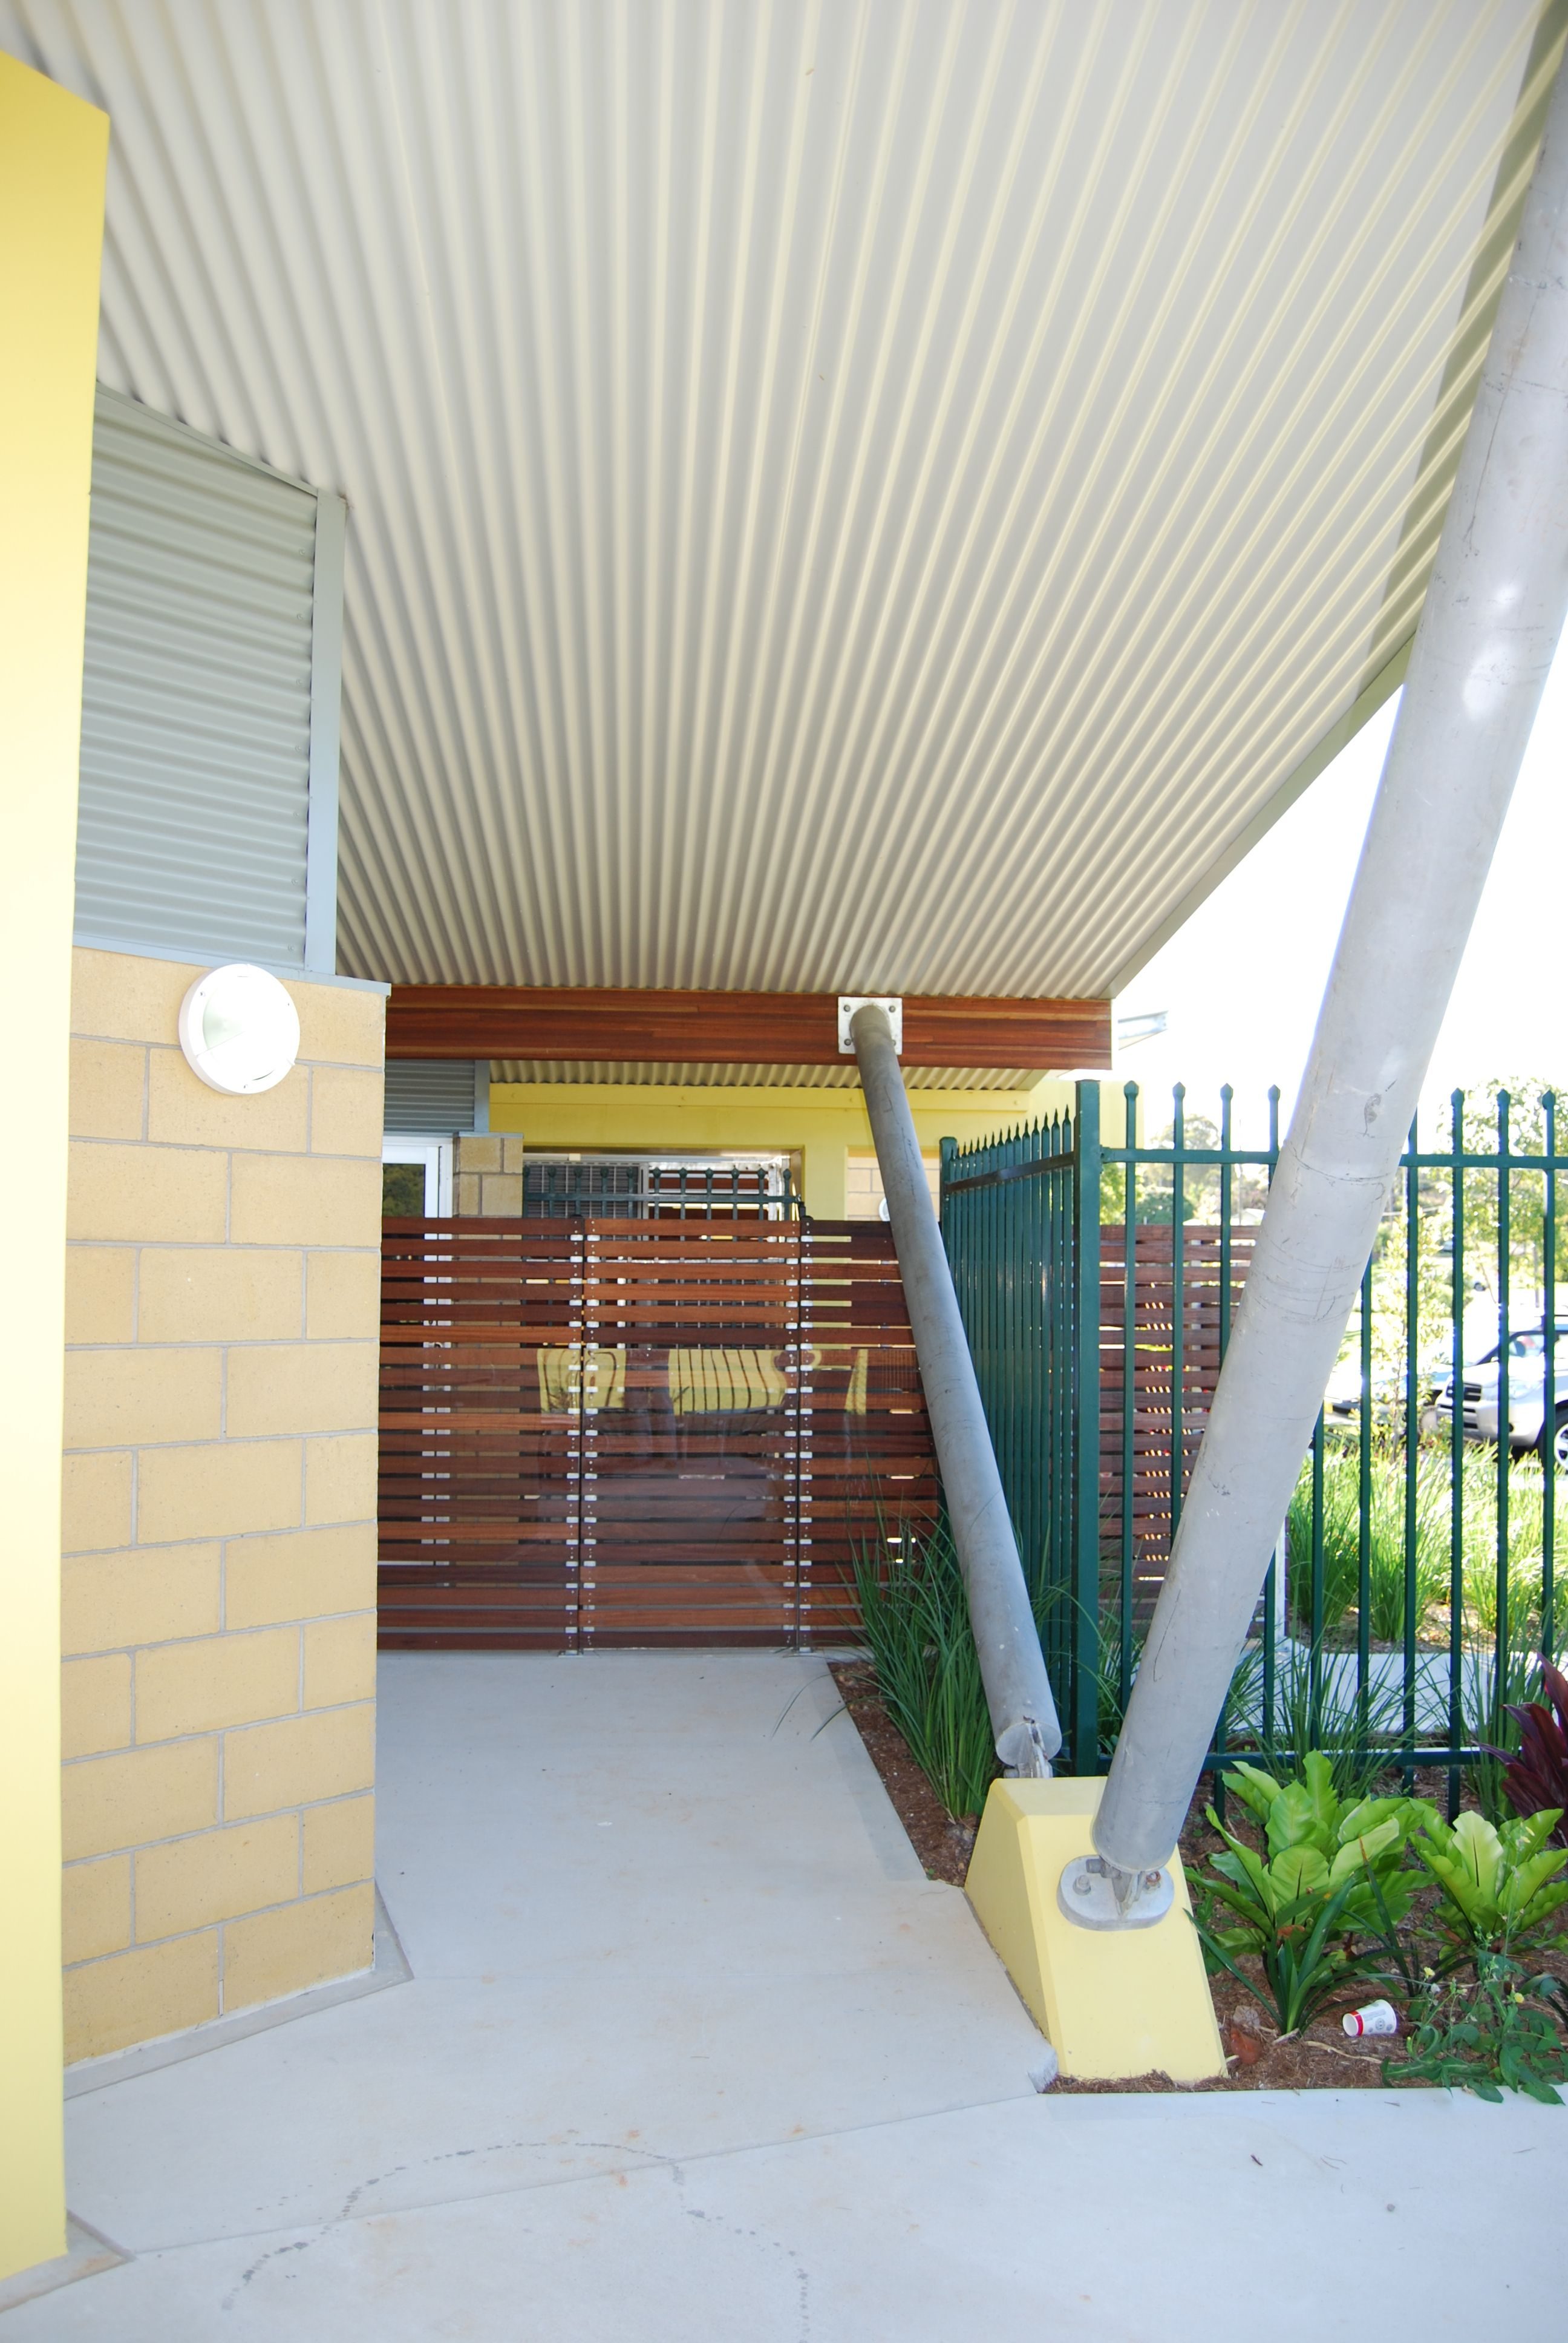 Entrance To Child Care Facility Showing Currogated Detail